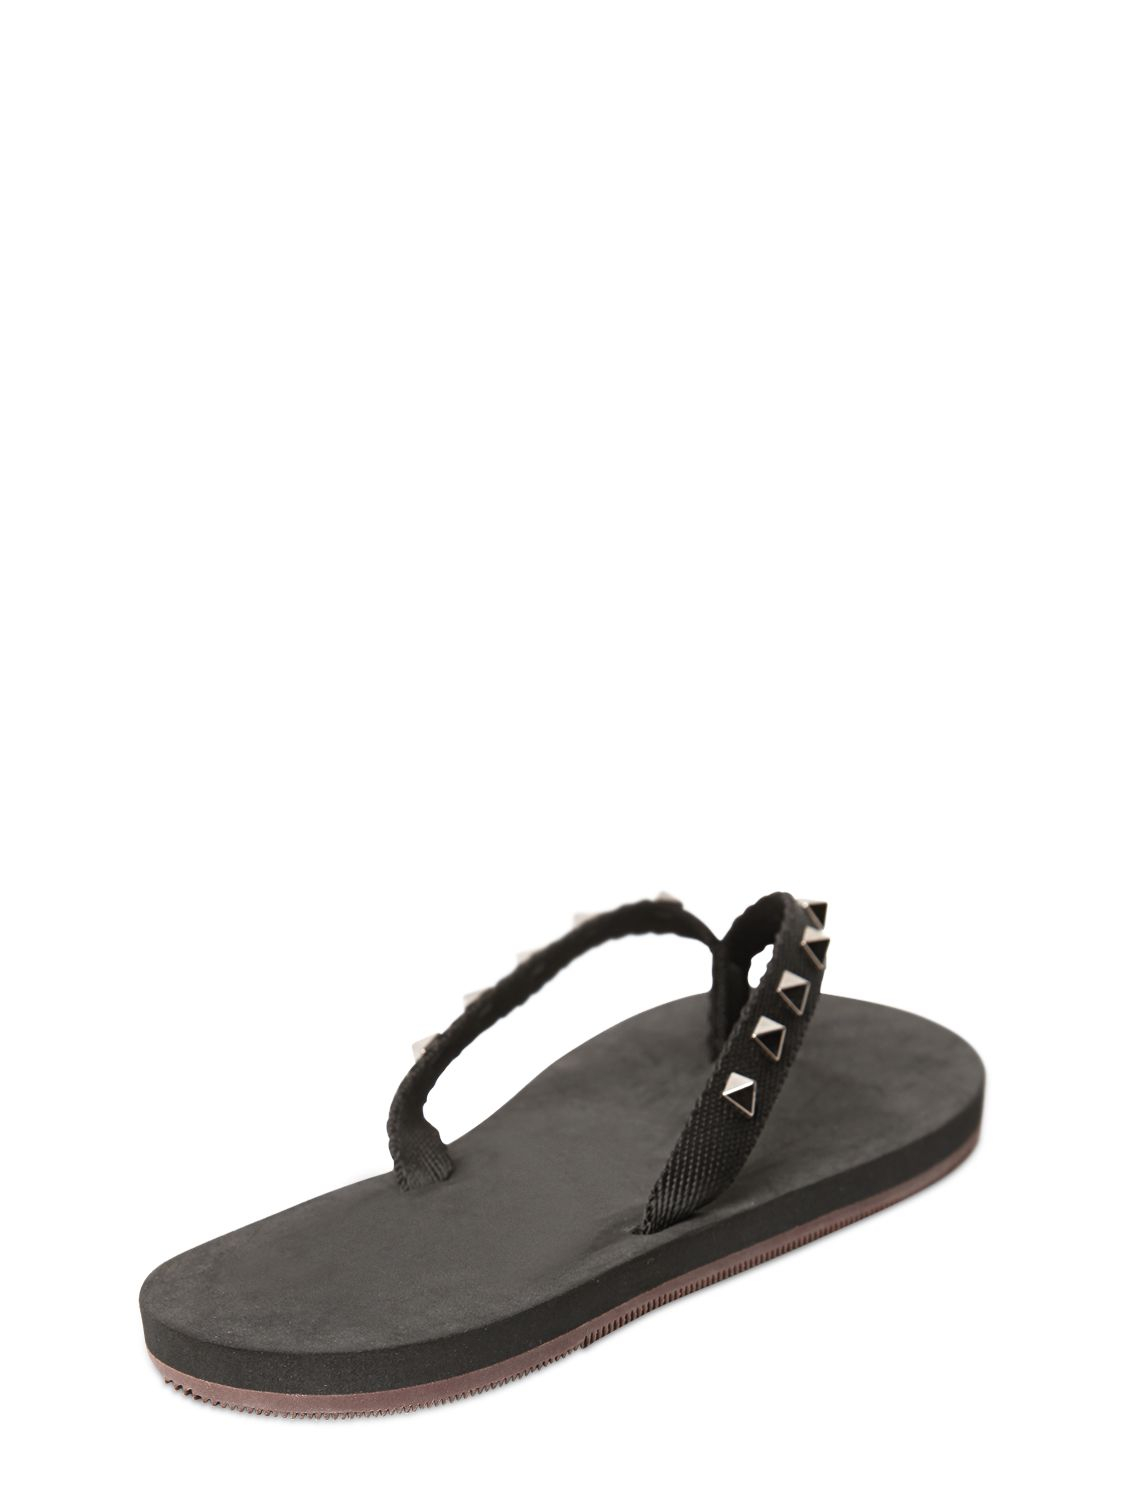 Valentino Studded Rubber Flip Flops In Black - Lyst-4754